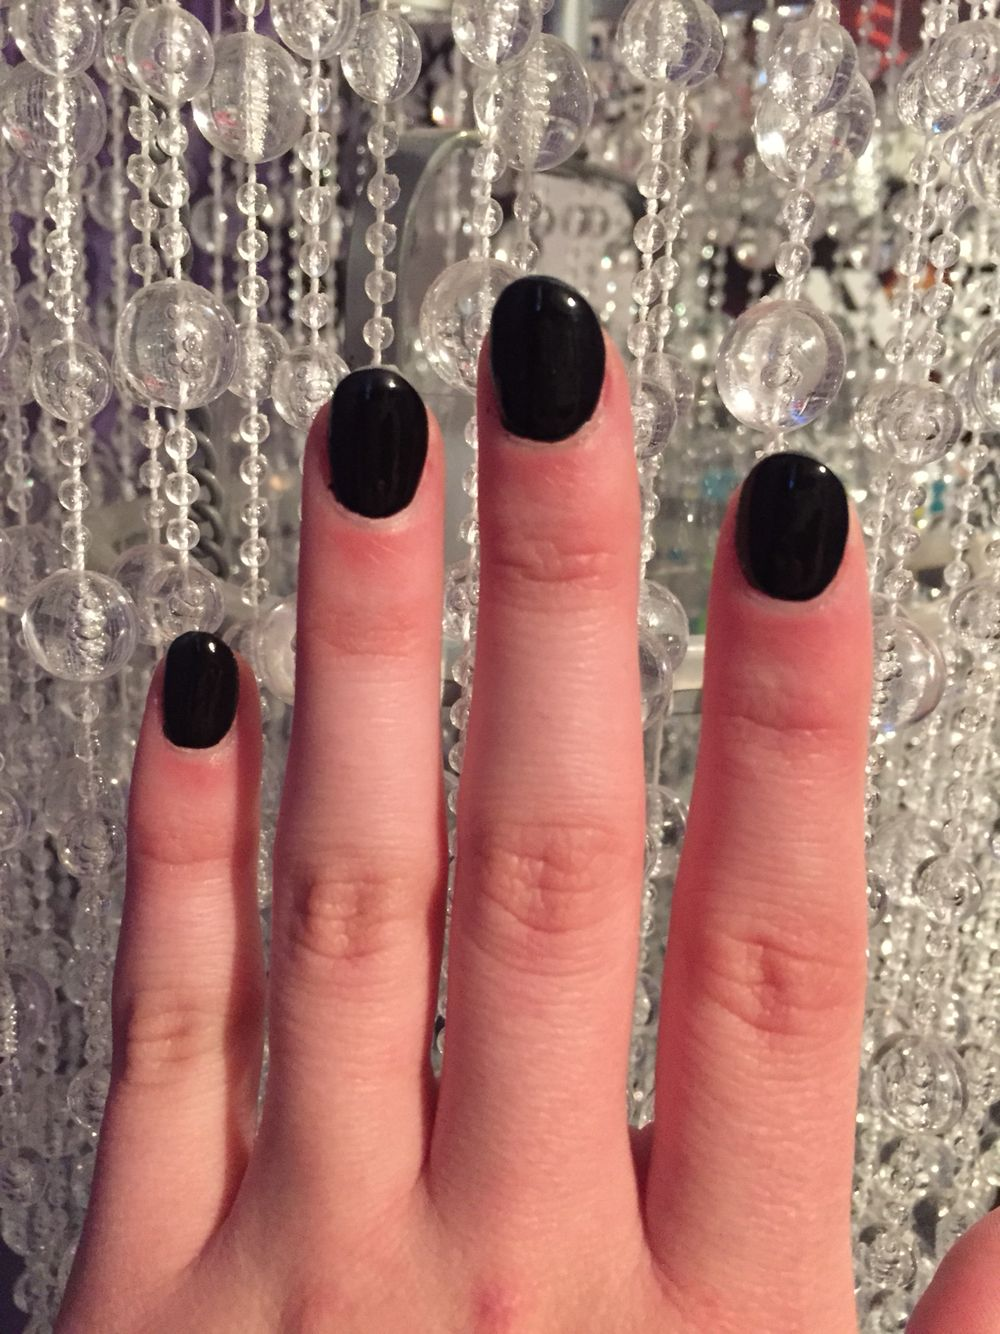 Black Round Acrylic Nails Rounded Acrylic Nails Black Acrylic Nails Acrylic Nails